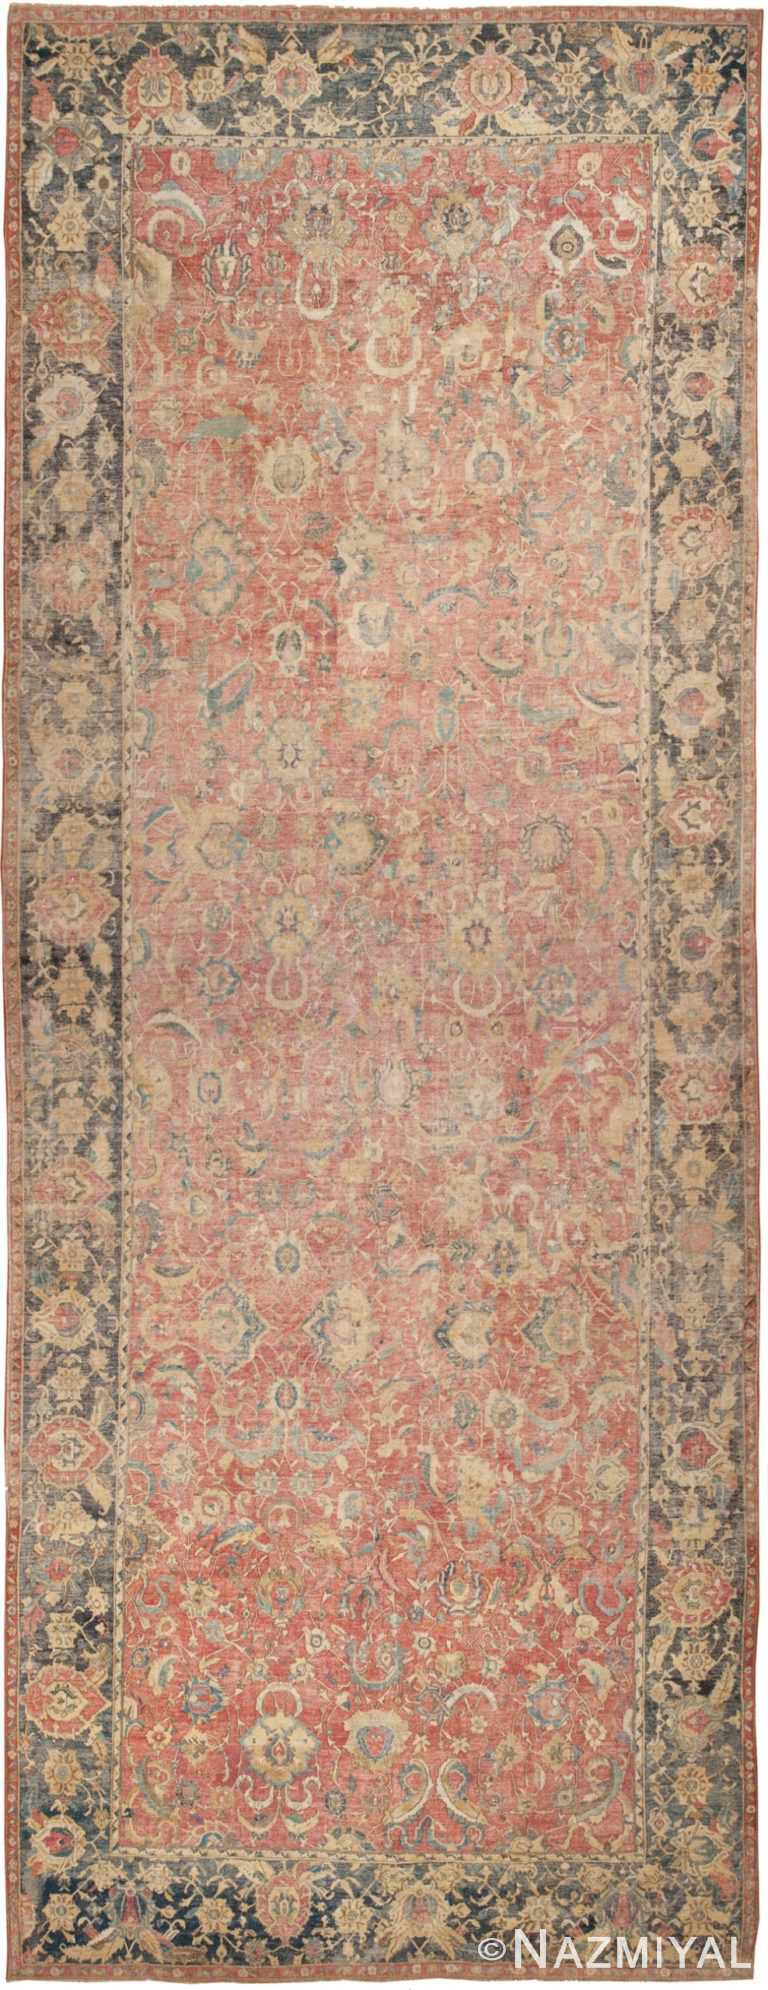 Antique Isfahan Rug | 44143 by Nazmiyal | HR